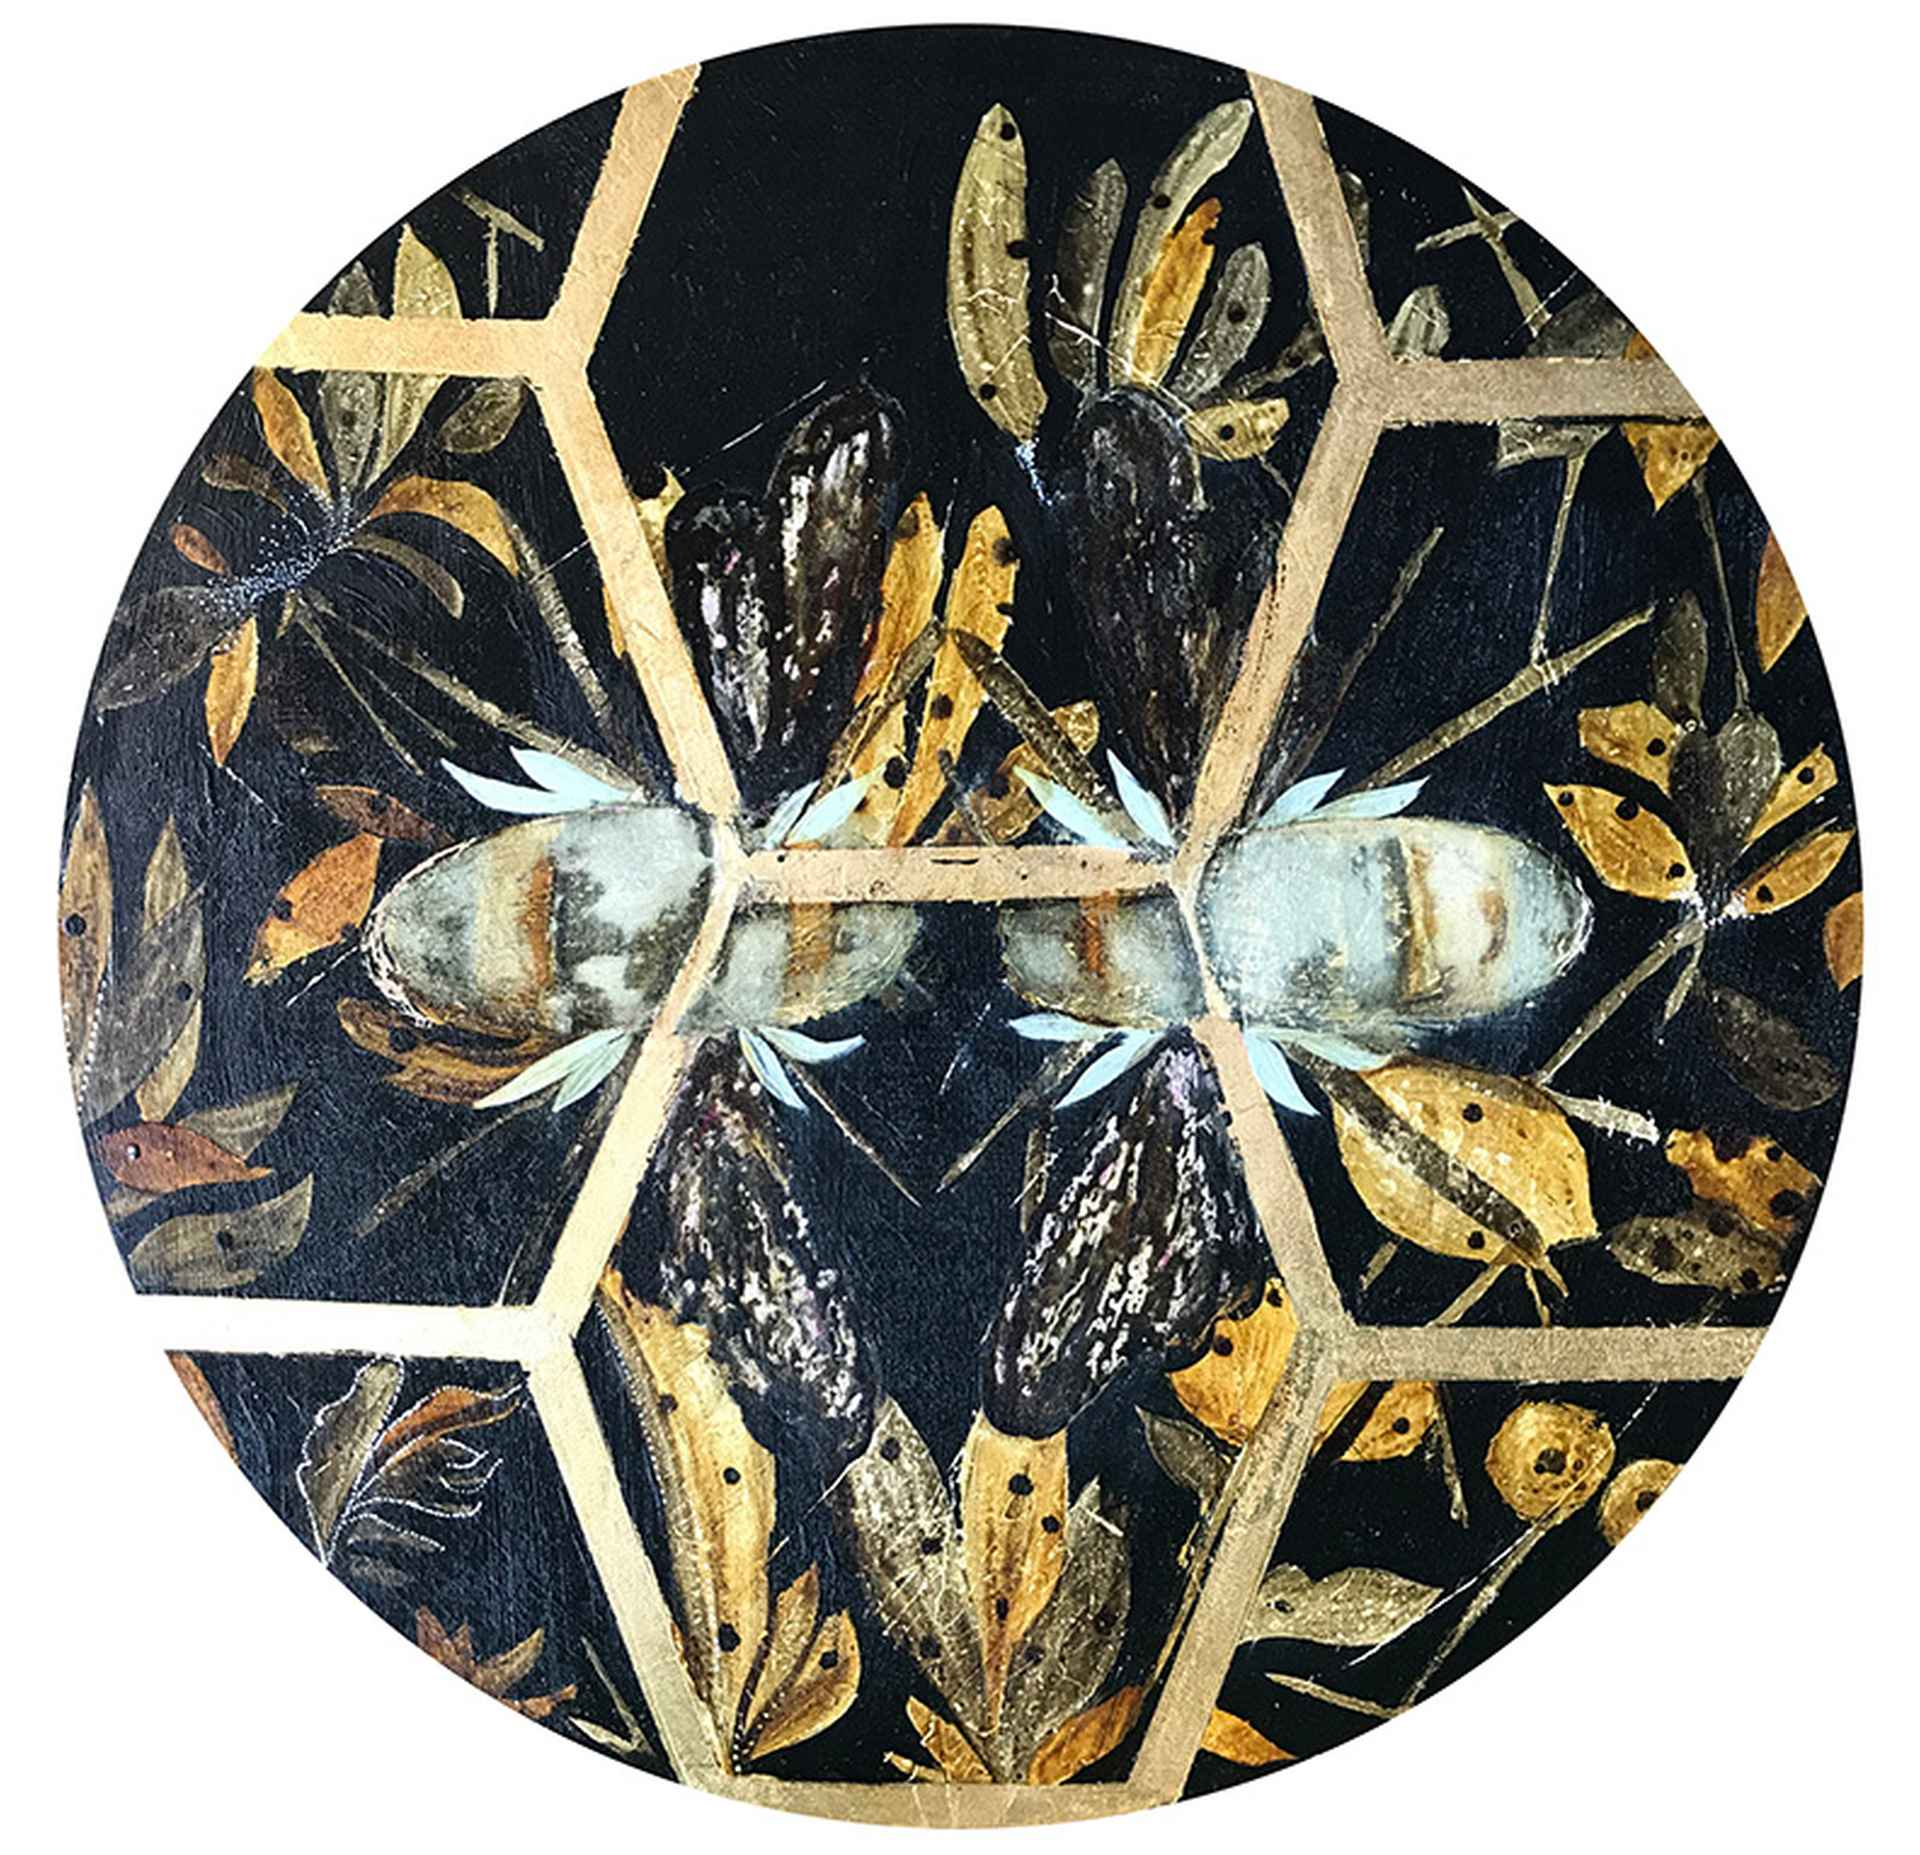 Insects 2 by Karenina Fabrizzi